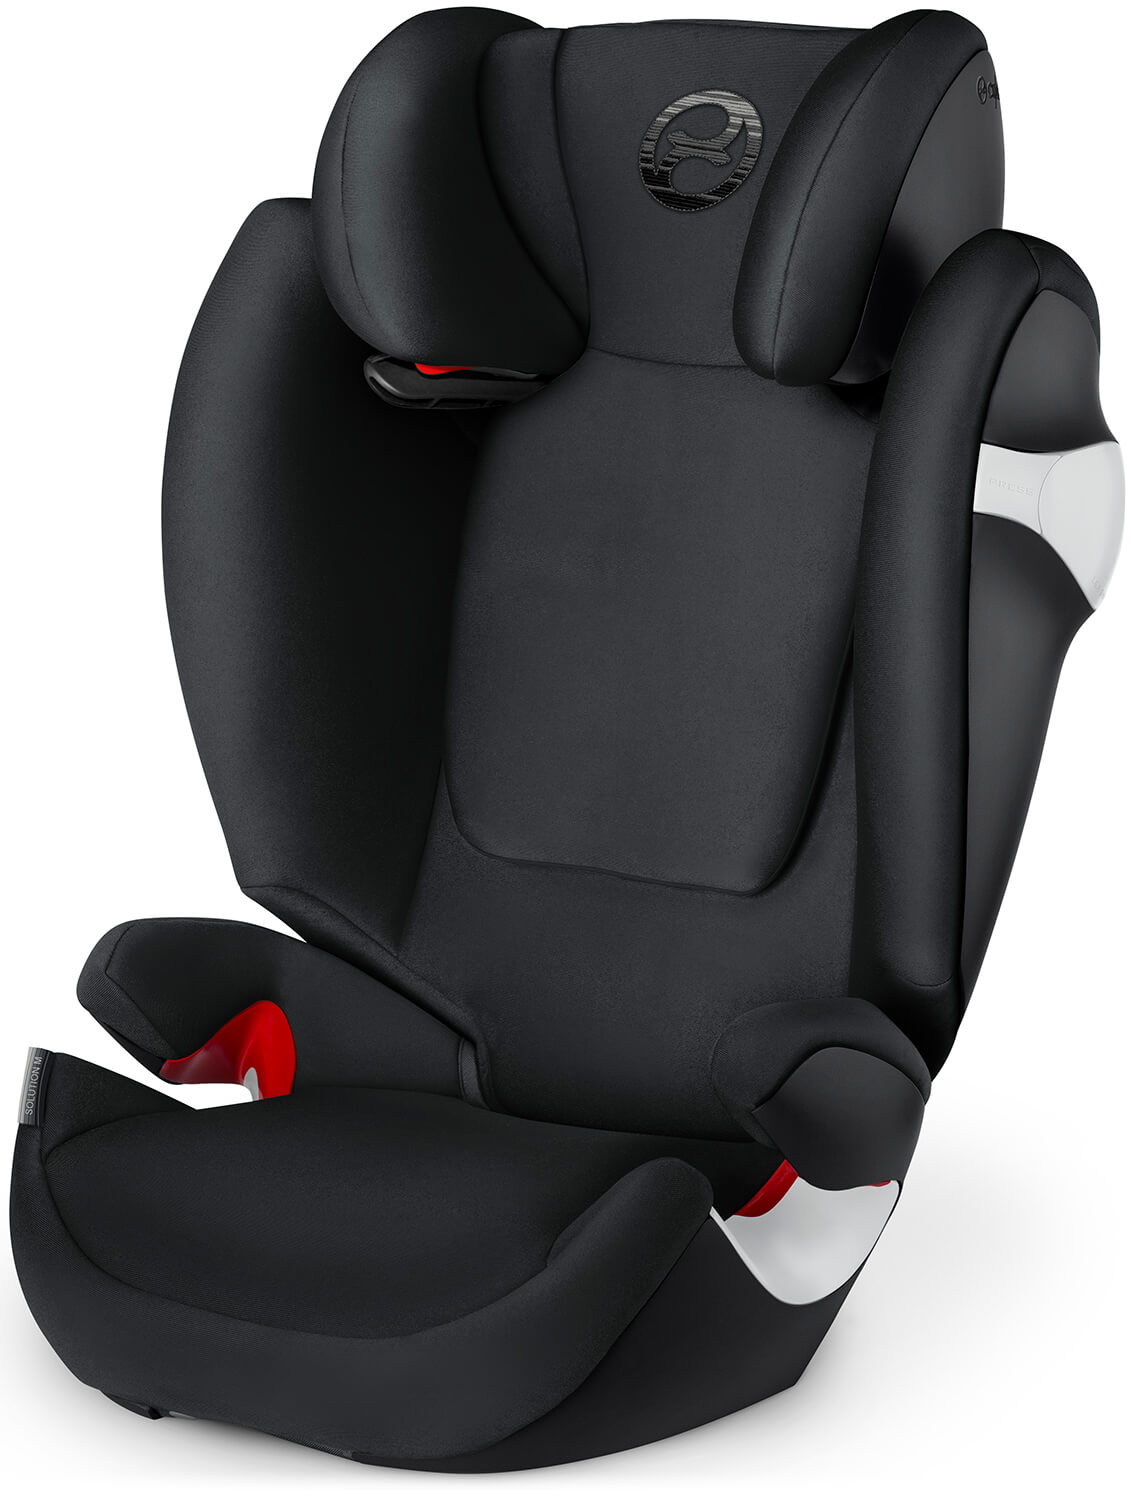 cybex solution m lavastone black 2018 child car seat. Black Bedroom Furniture Sets. Home Design Ideas